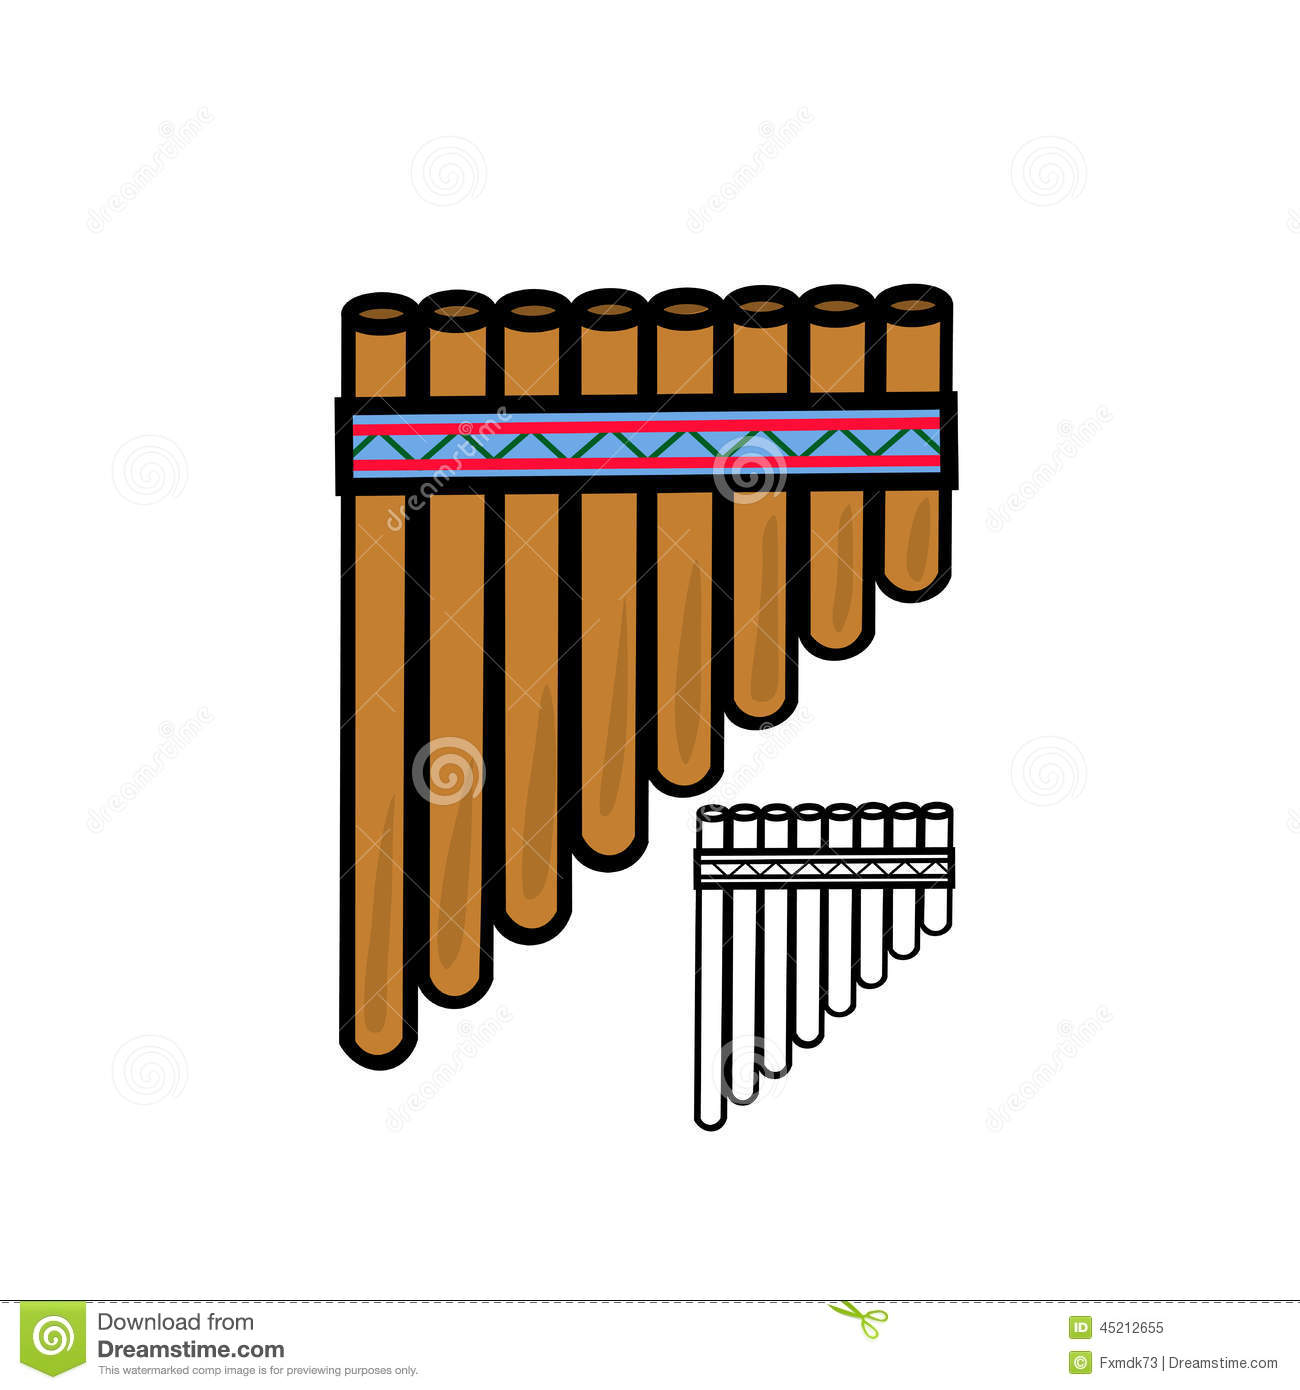 Pan flute stock vector. Image of latin, culture, pattern ...